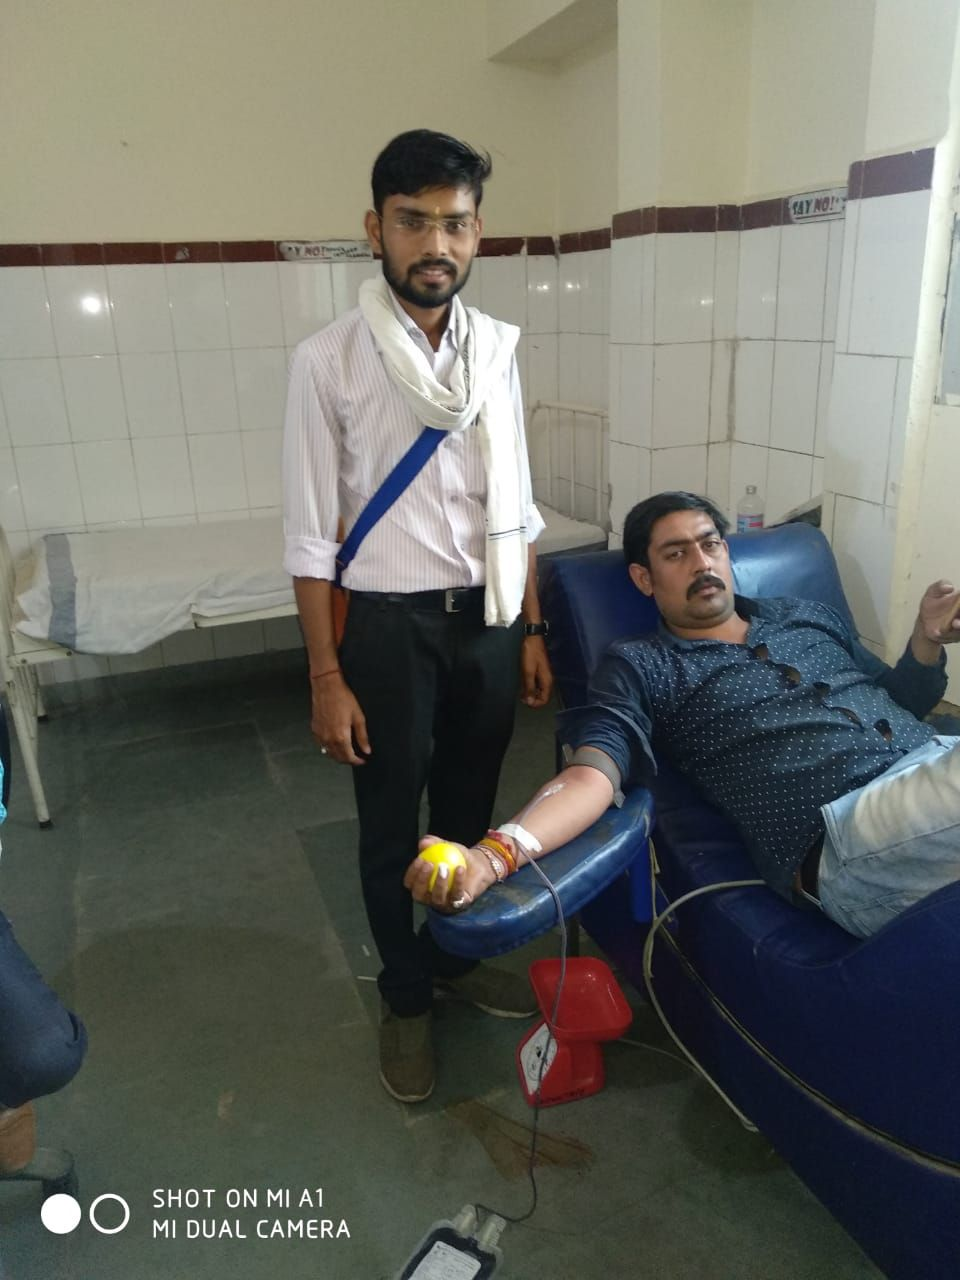 26 surviving blood donation at the age of 27 has saved 26 lives